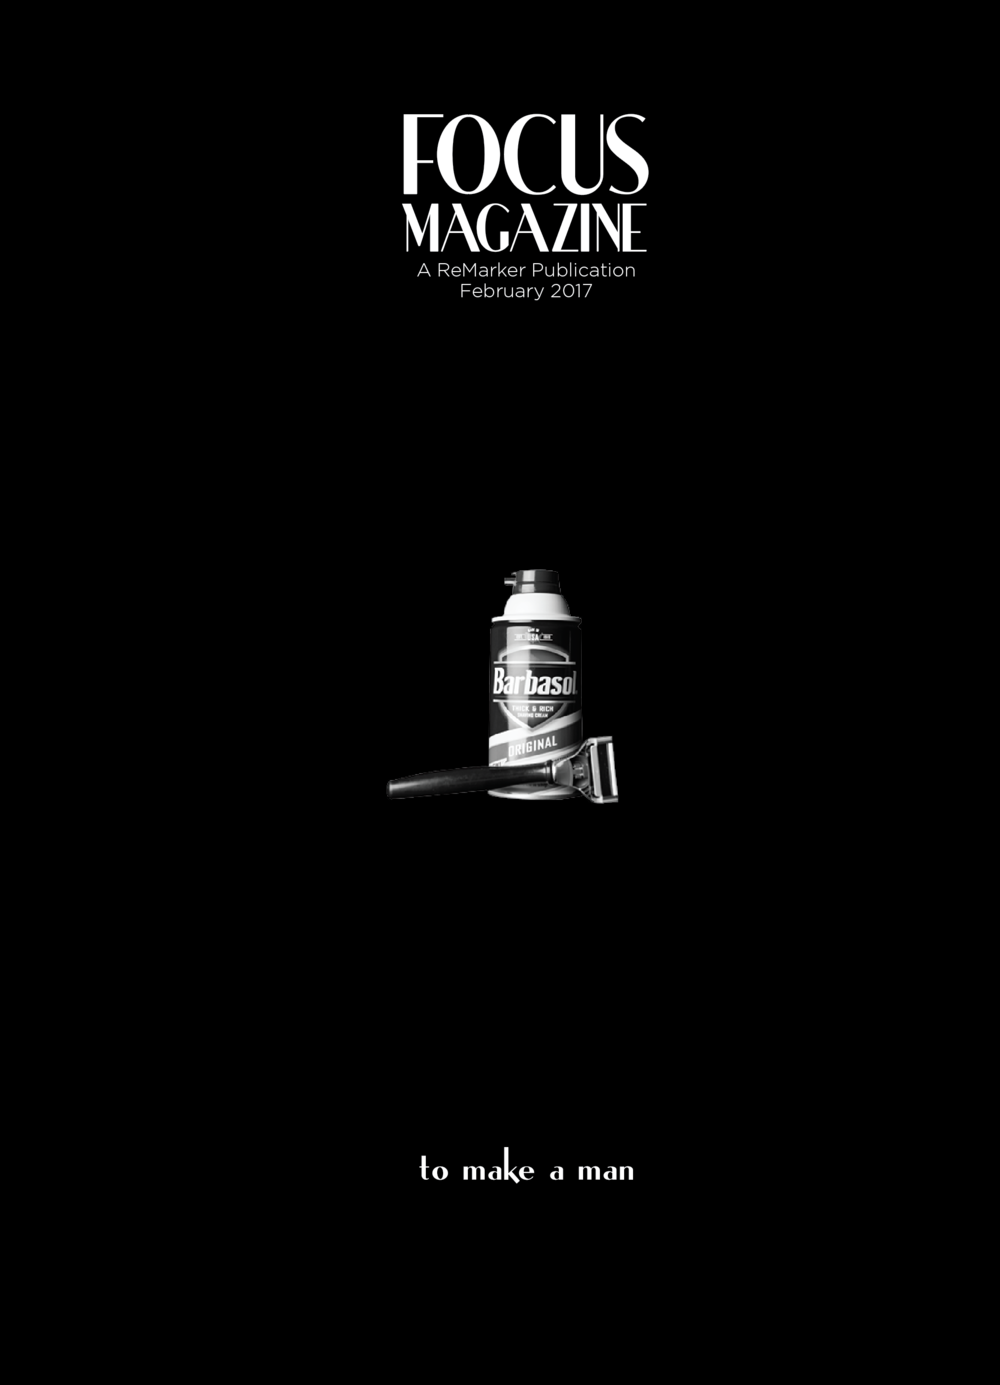 Though simple, this cover played off of a typical stereotype of manhood — shaving — and used unique typography continued on the inside of the magazine.